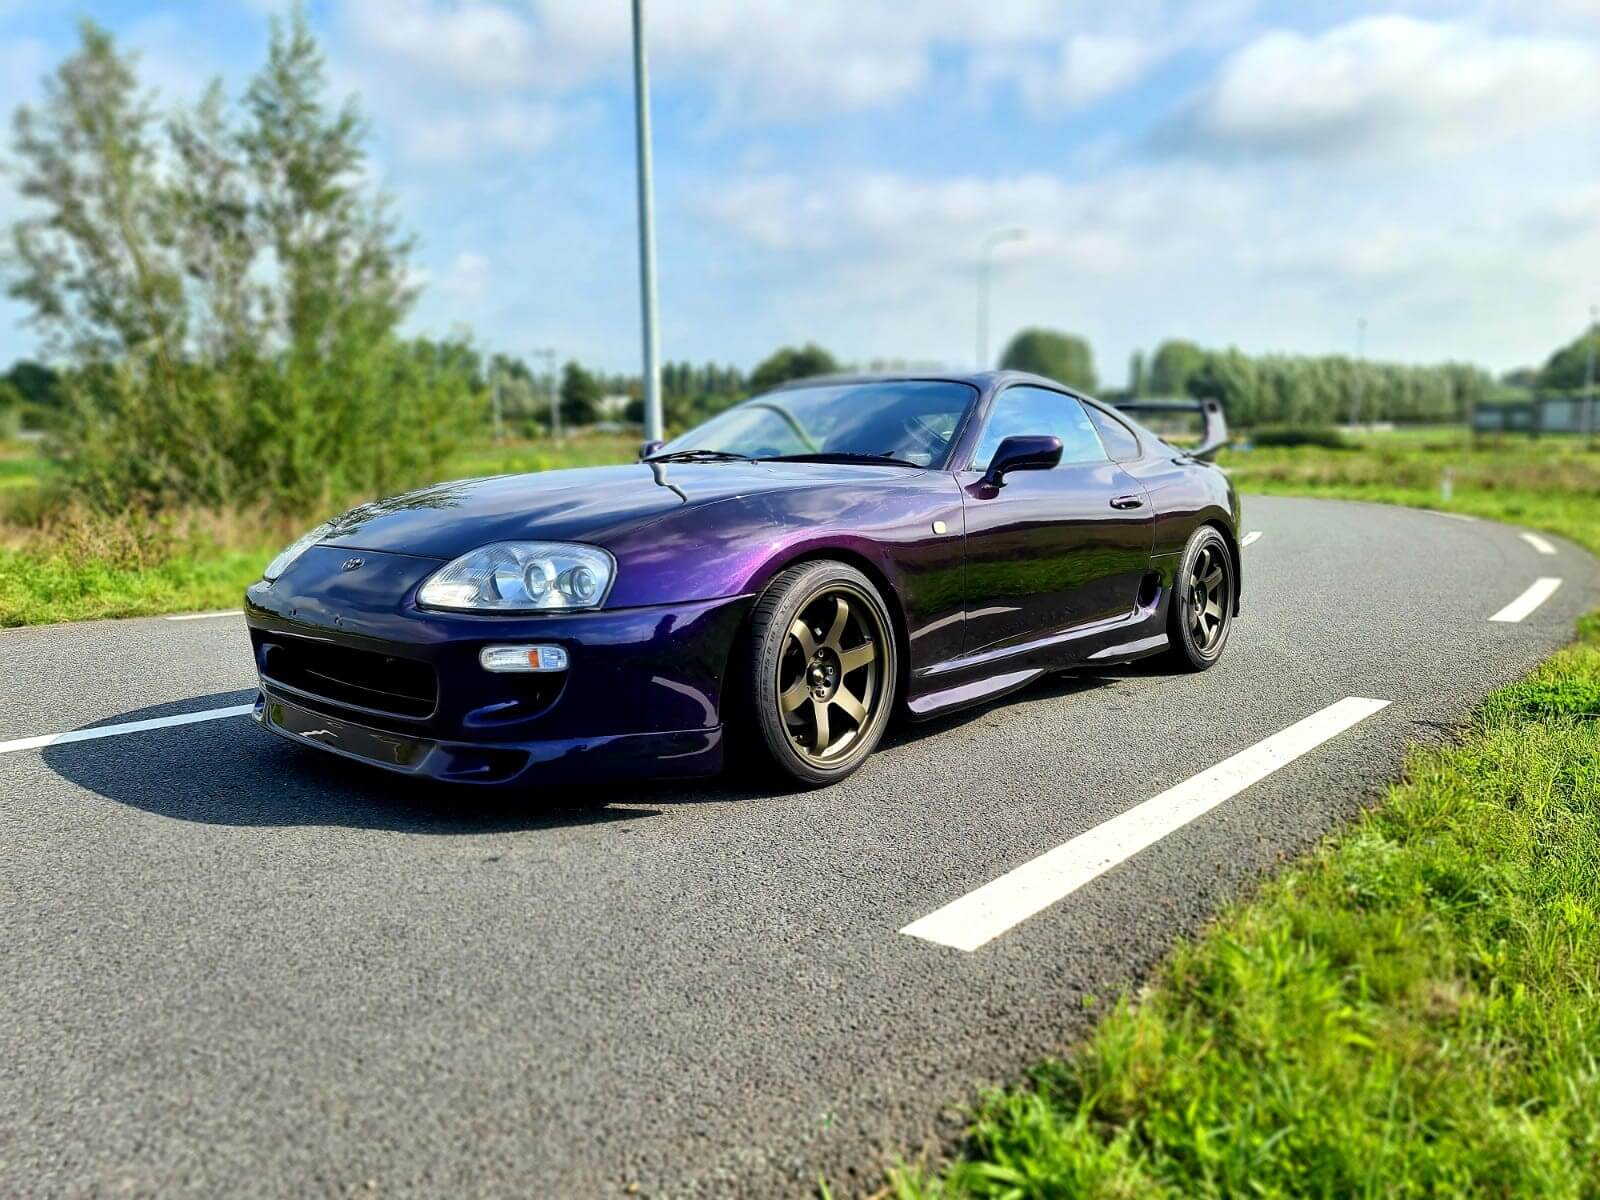 Toyota-Supra-Non-Turbo-W58-5-Speed-1